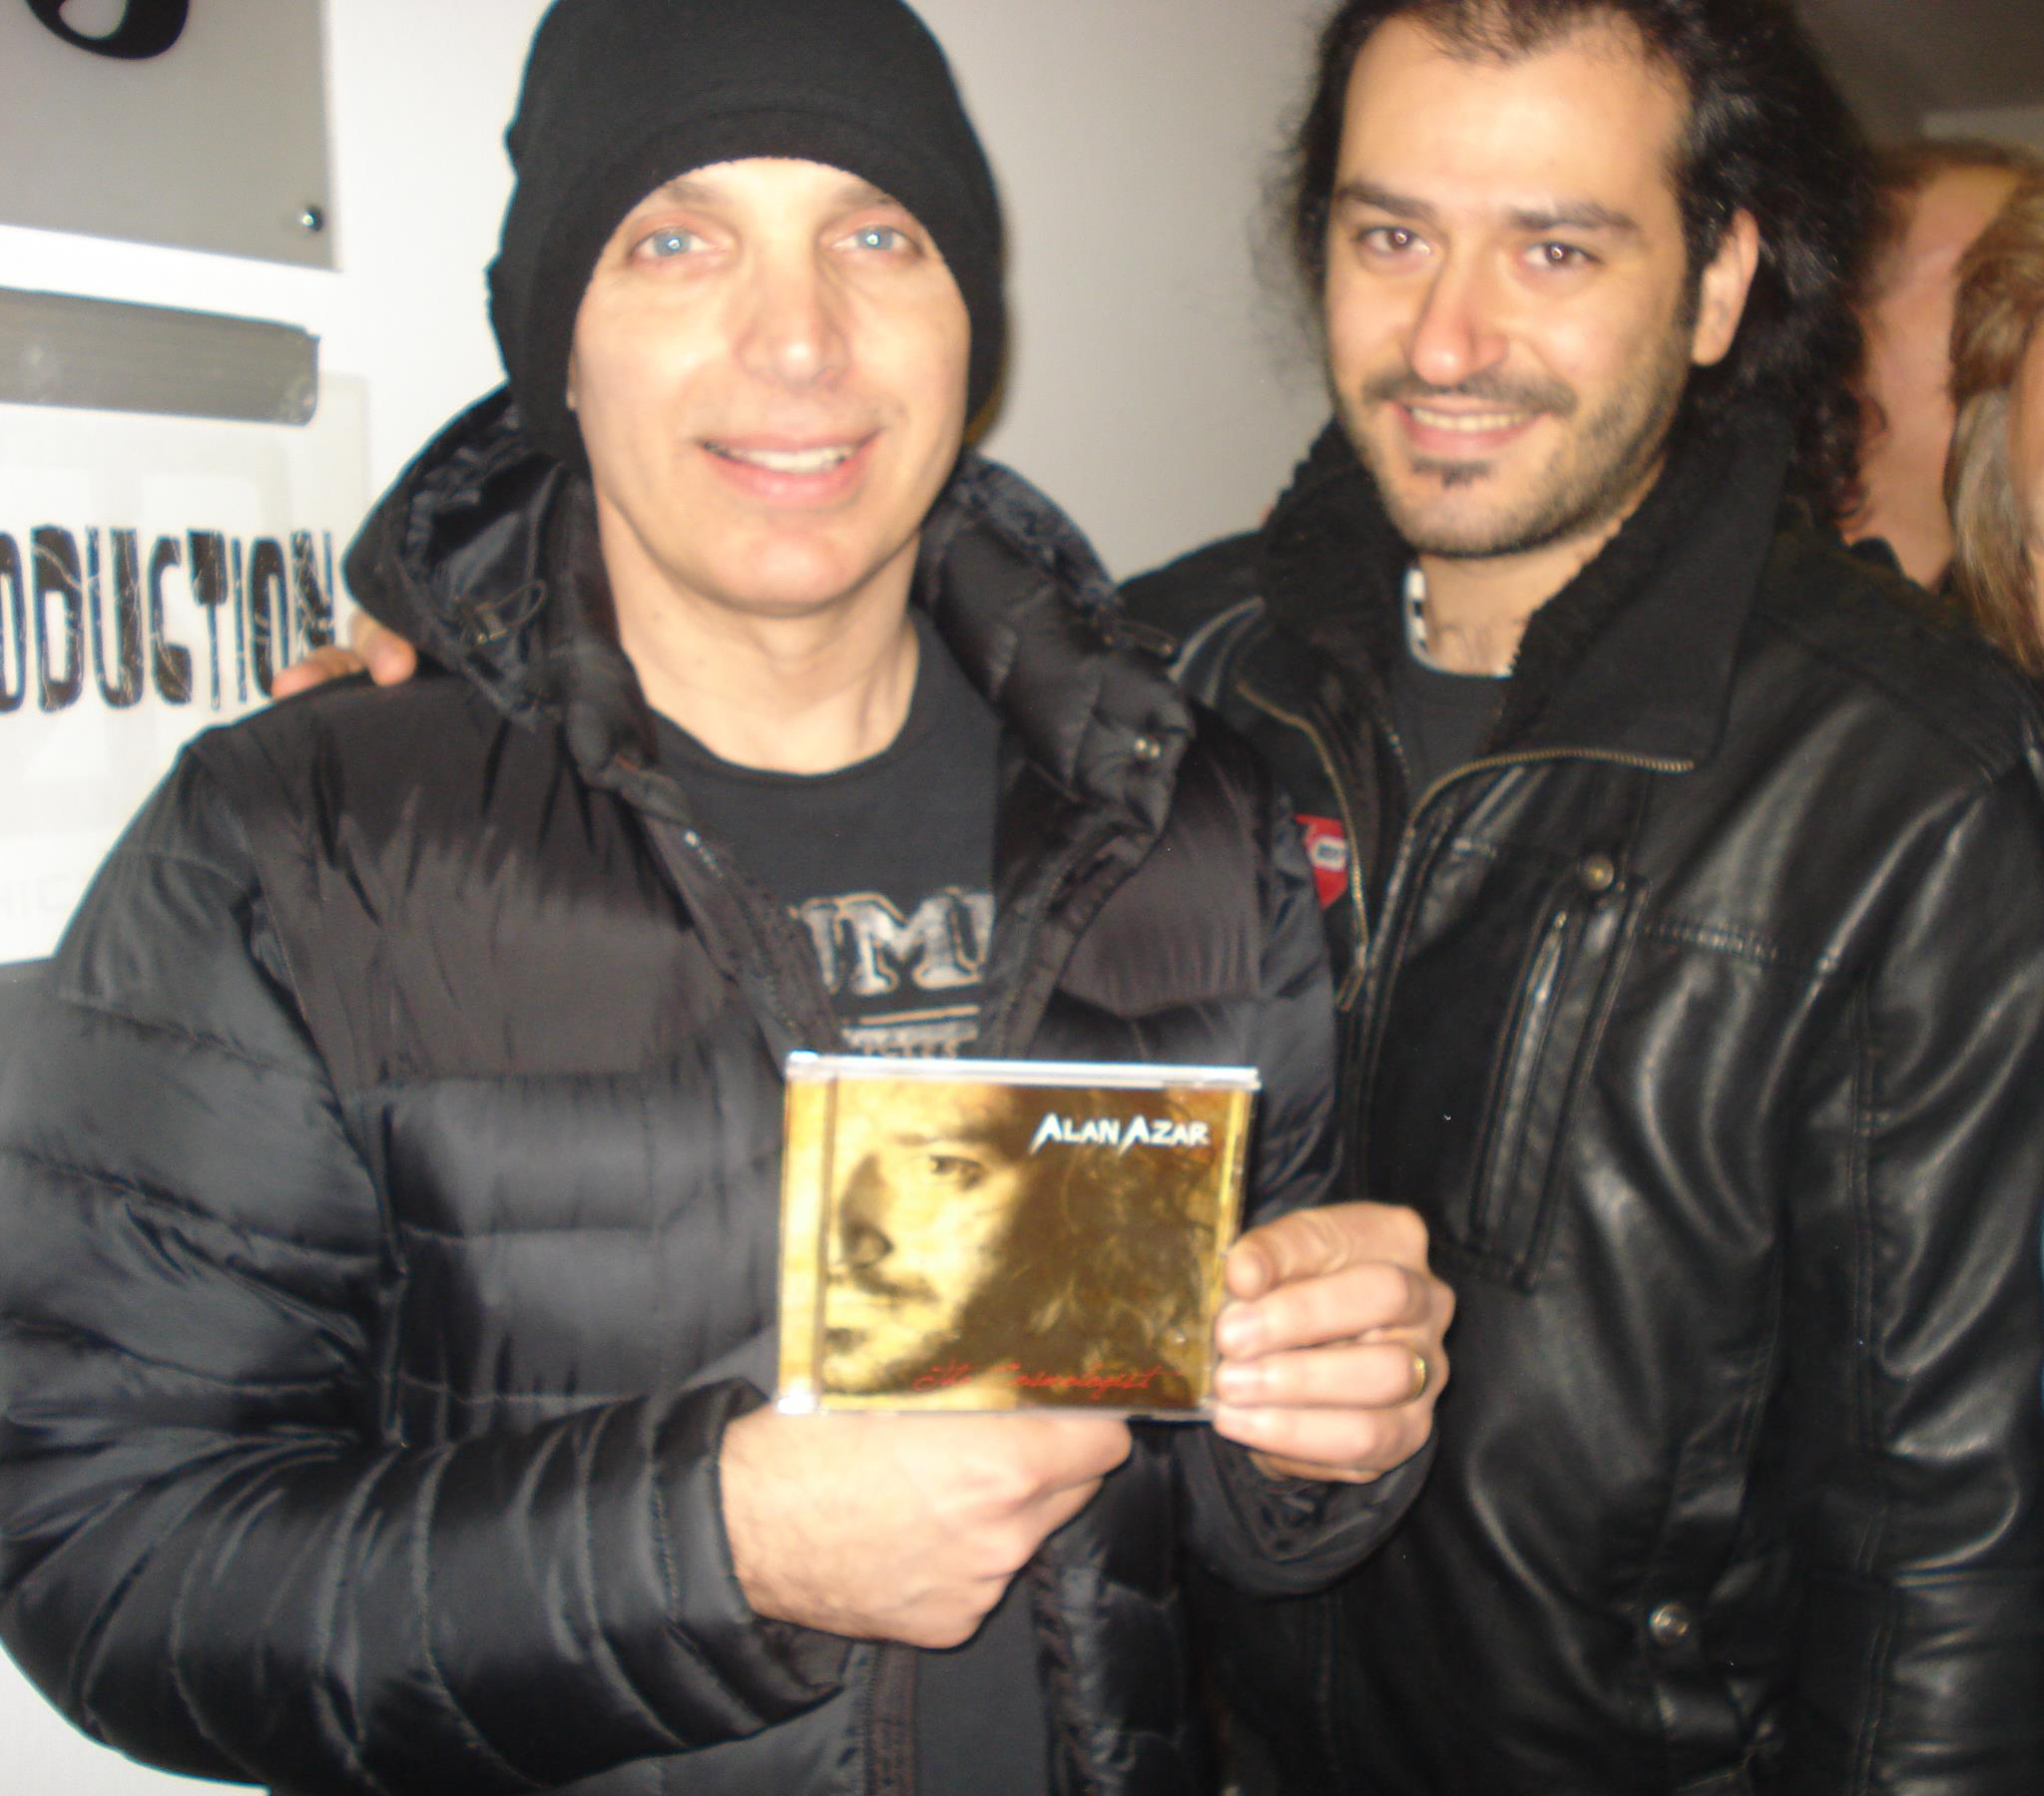 Alan Azar with Joe Satriani - The Cosmologist CD